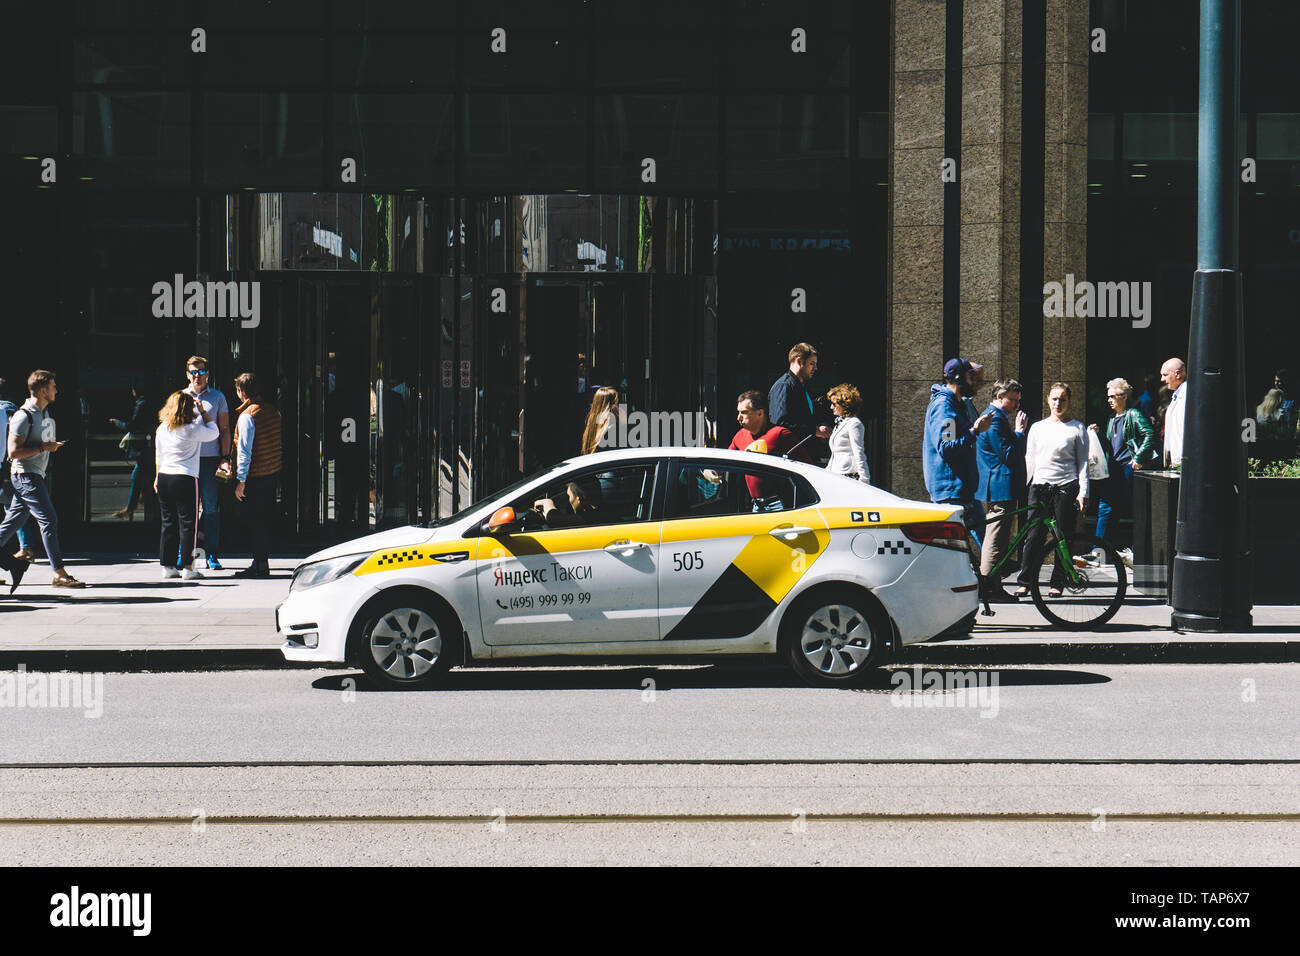 Moscow, Russia — May 27, 2019: Yandex Taxi car near in the center of